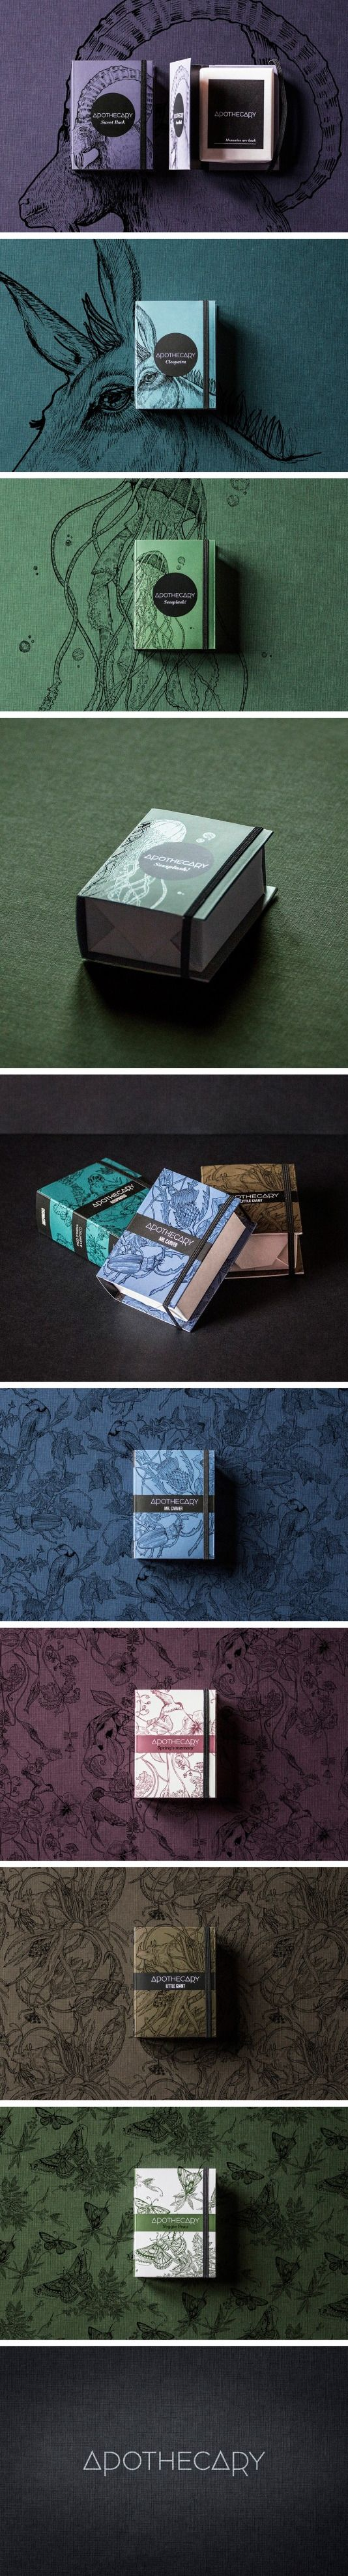 Apothecary by The6th Creative Studio